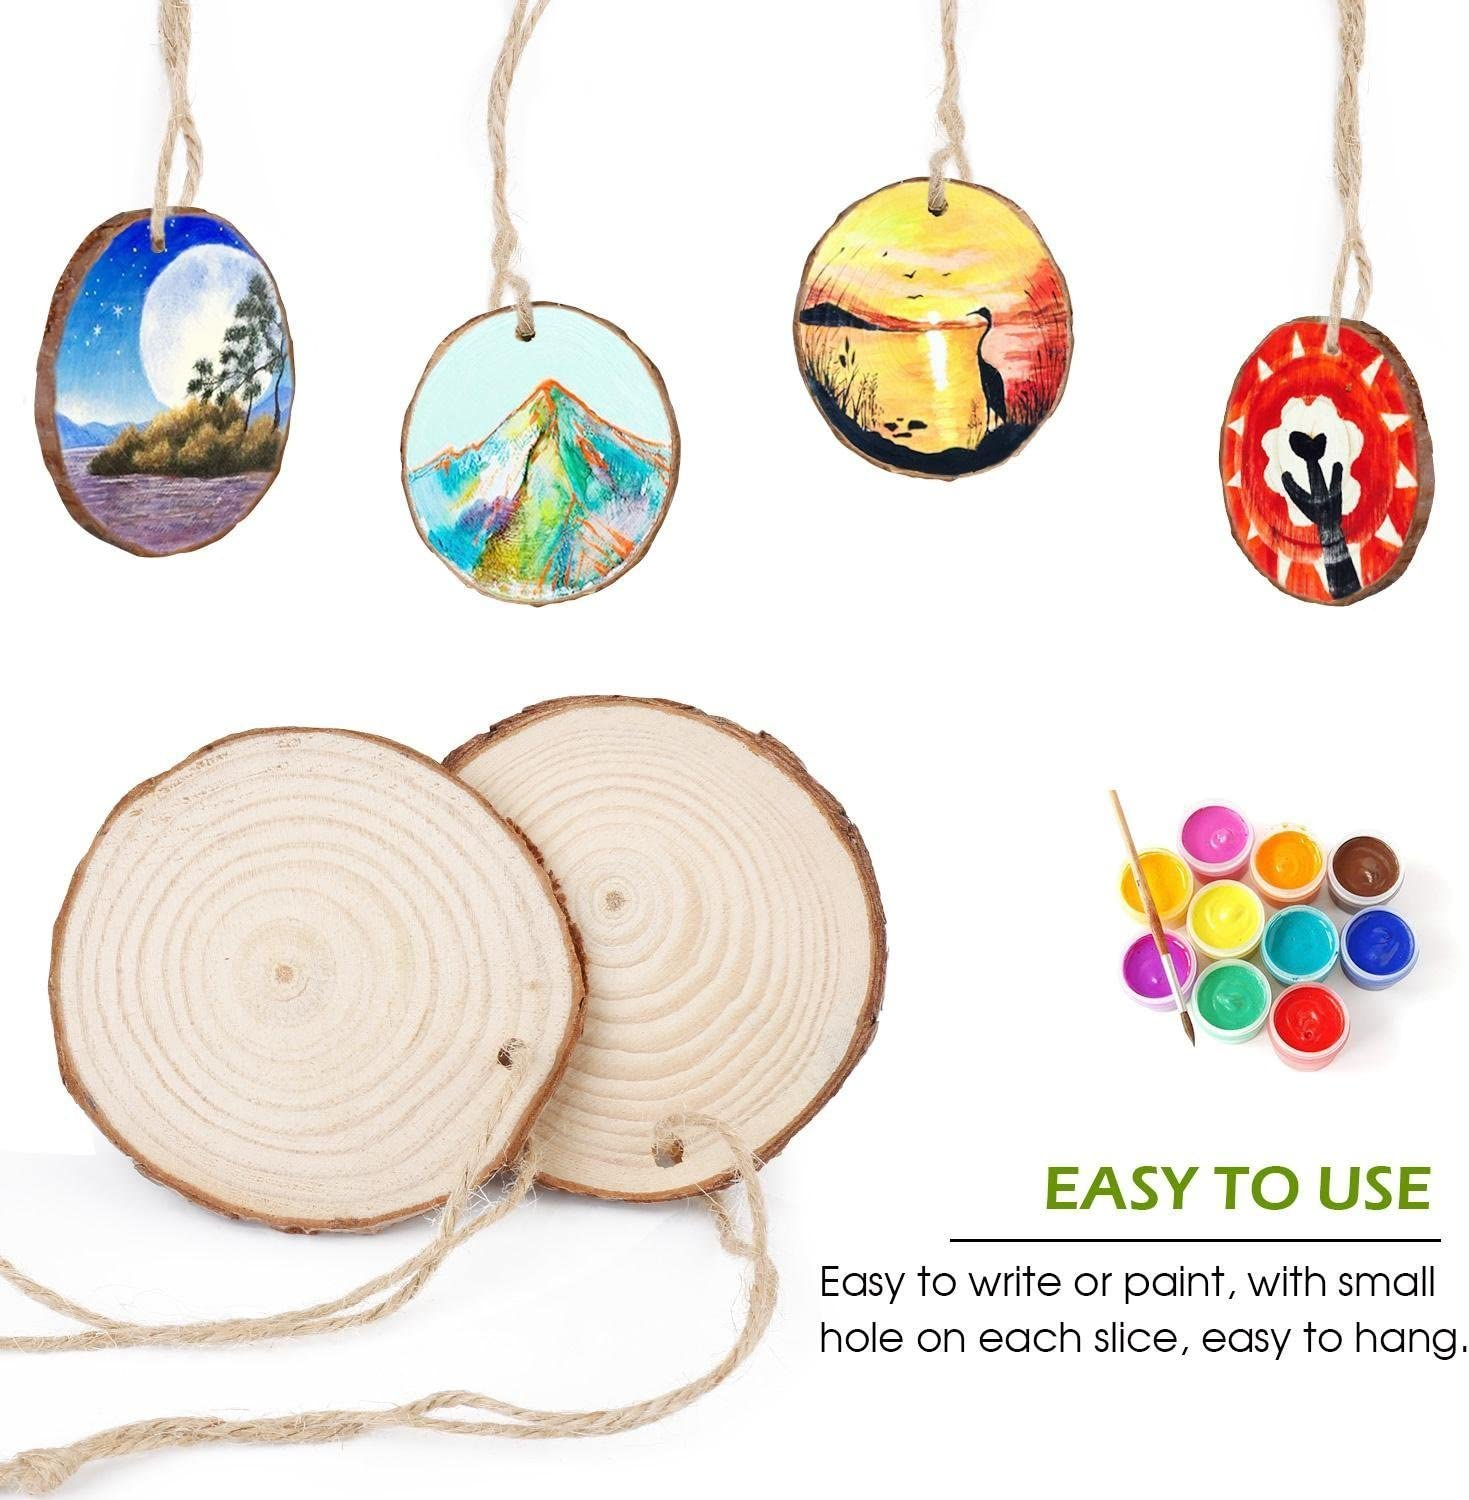 50pcs 1.9-2.4 Wood Slices with Holes and 33 Feet Natrual Jute Twine for DIY Crafts Centerpieces by MAIYUAN